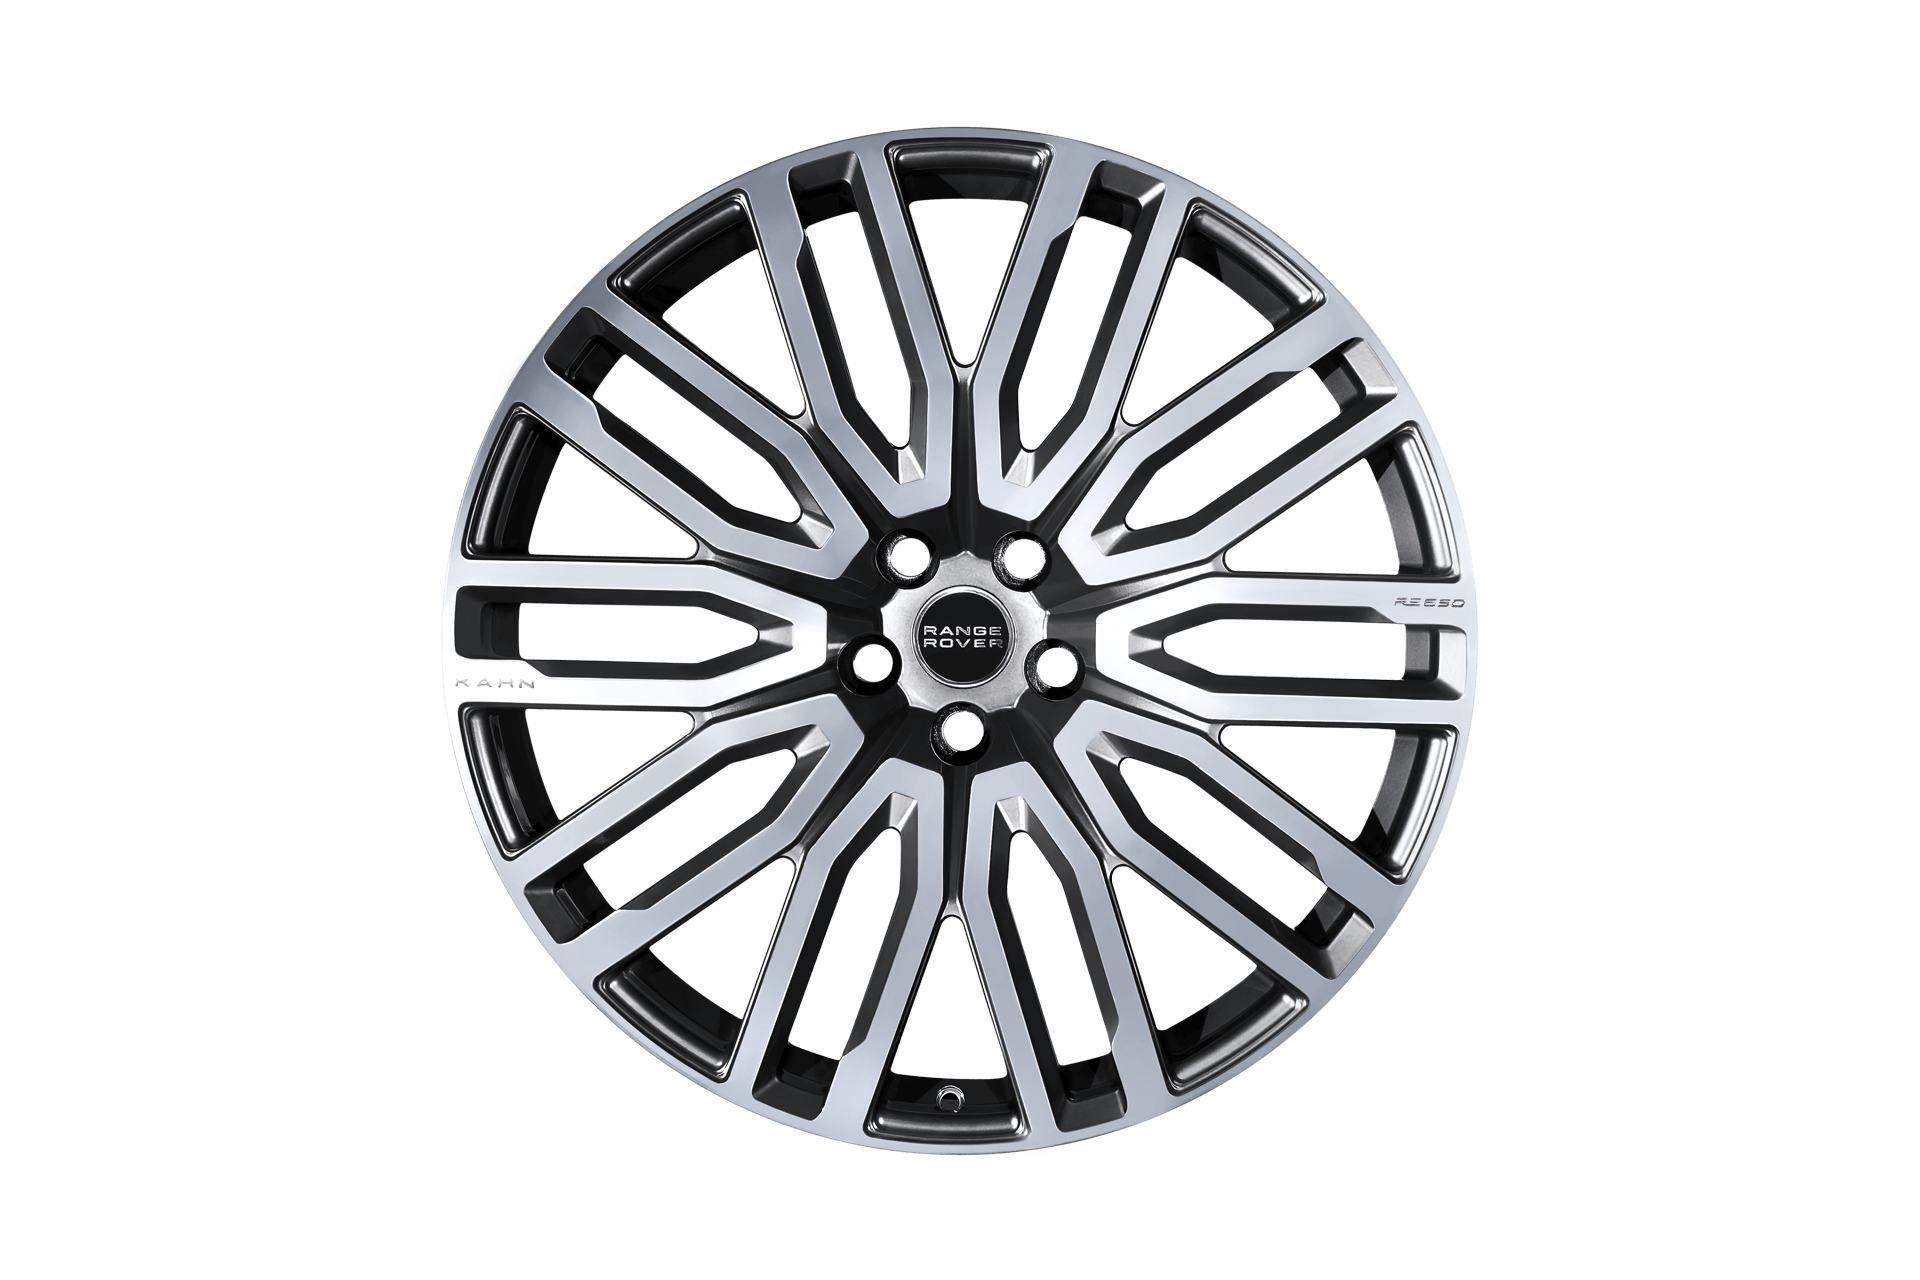 Range Rover Sport SVR (2018-PRESENT) Pace Car RS650 Forged Light Alloy Wheels